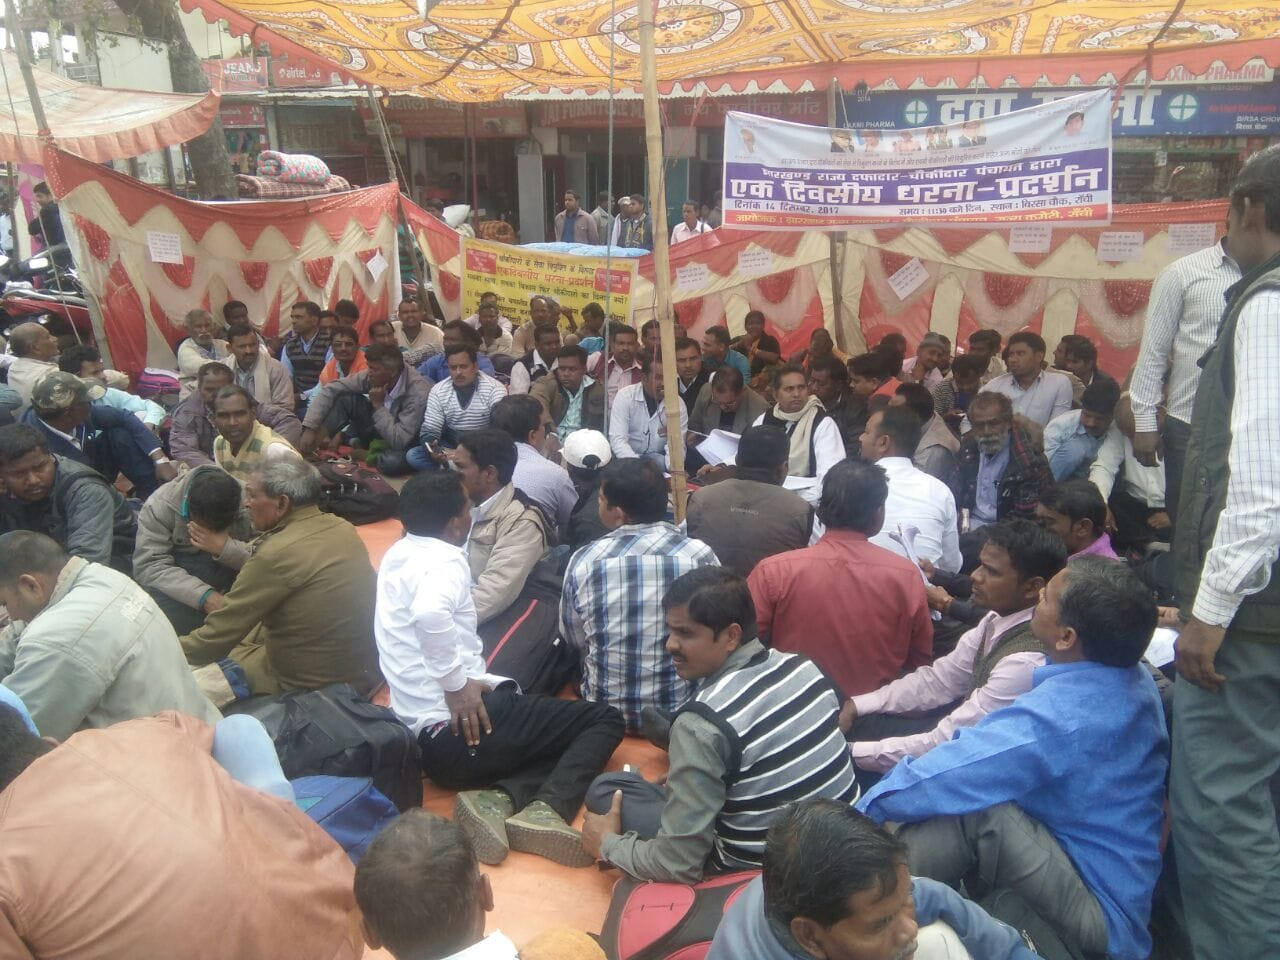 <p>Members of the Jharkhand's Dafadar-Chaukidaar Panchayat organised a 'dharna' at Birsa Chowk, Ranchi for their various demands.</p>